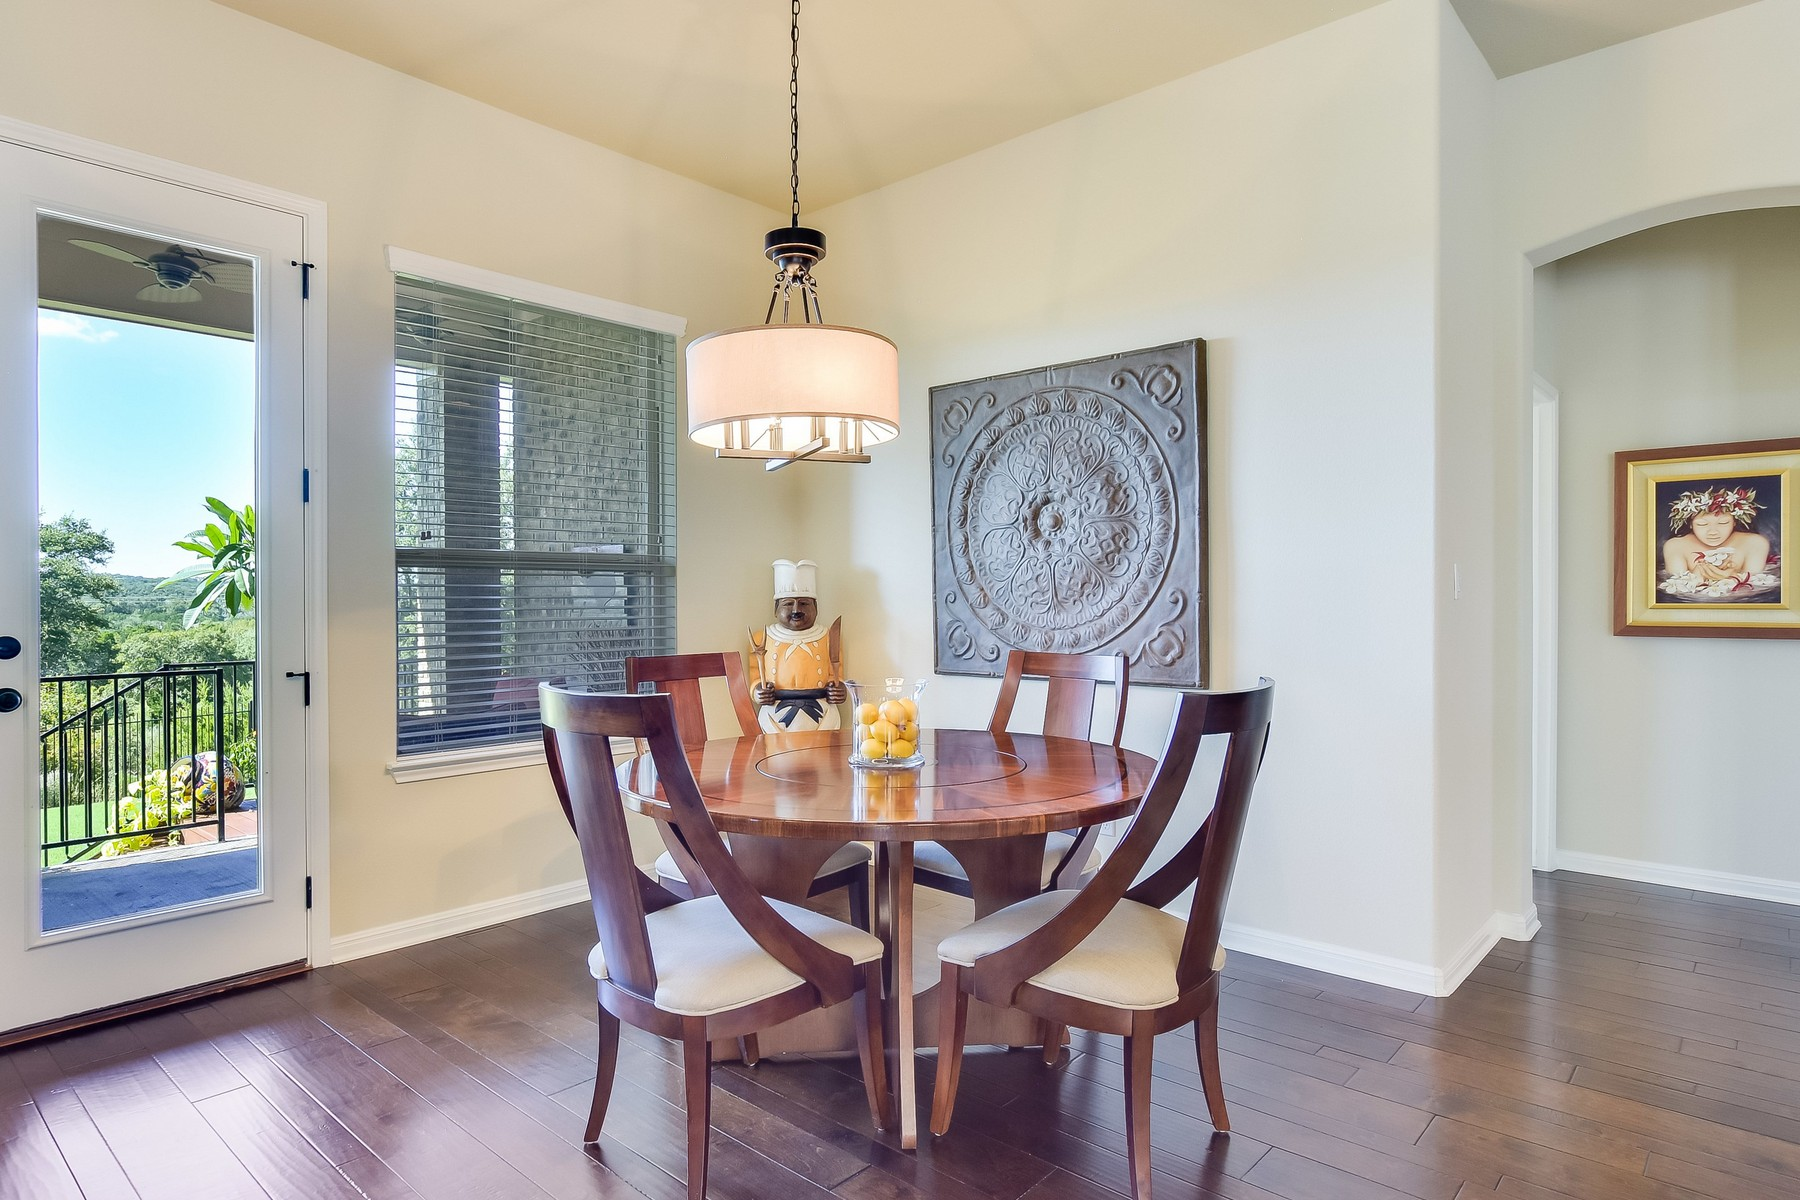 Additional photo for property listing at Stunning Home in Neighborly Reunion Ranch! 306 Emma Loop Austin, Texas 78737 United States